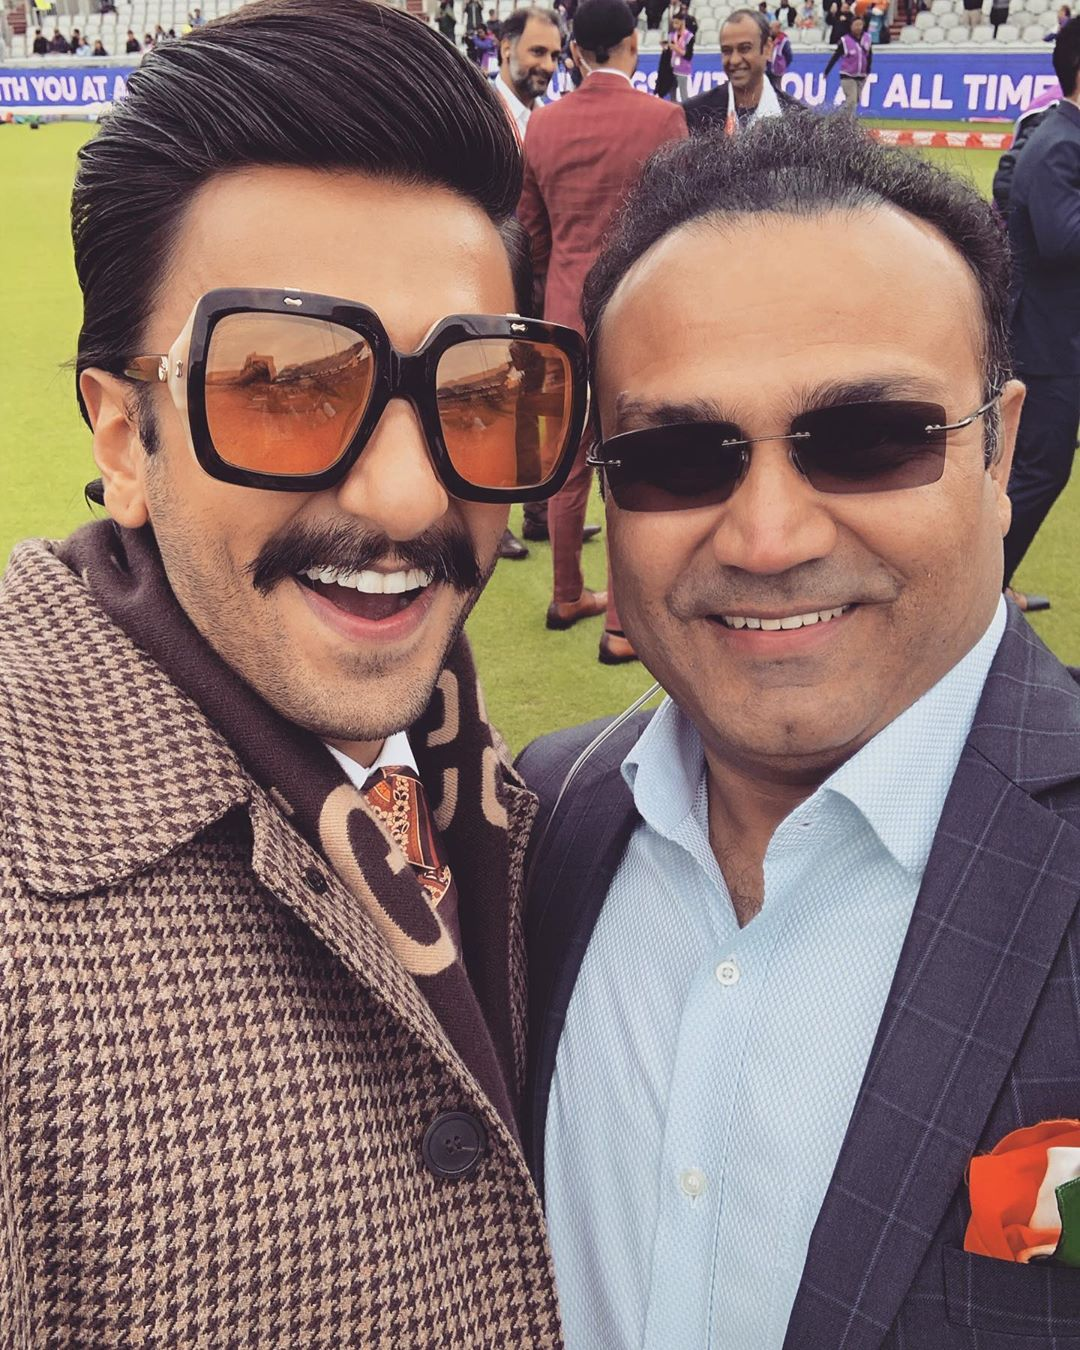 Ranveer Singh With Older Generation Cricket Player At ICC Cricket World Cup